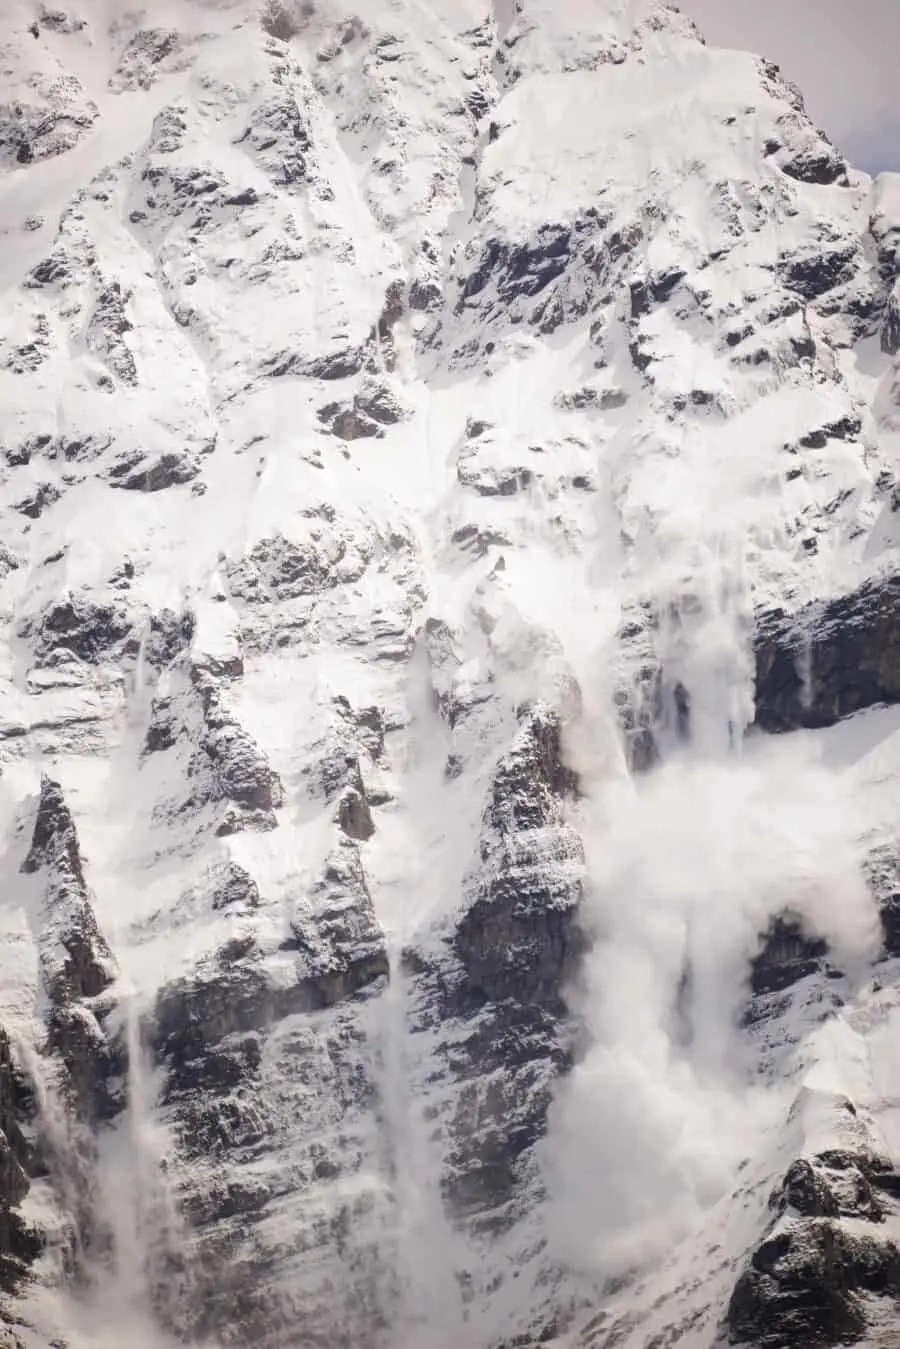 Switzerland Avalanche by The Wandering Lens